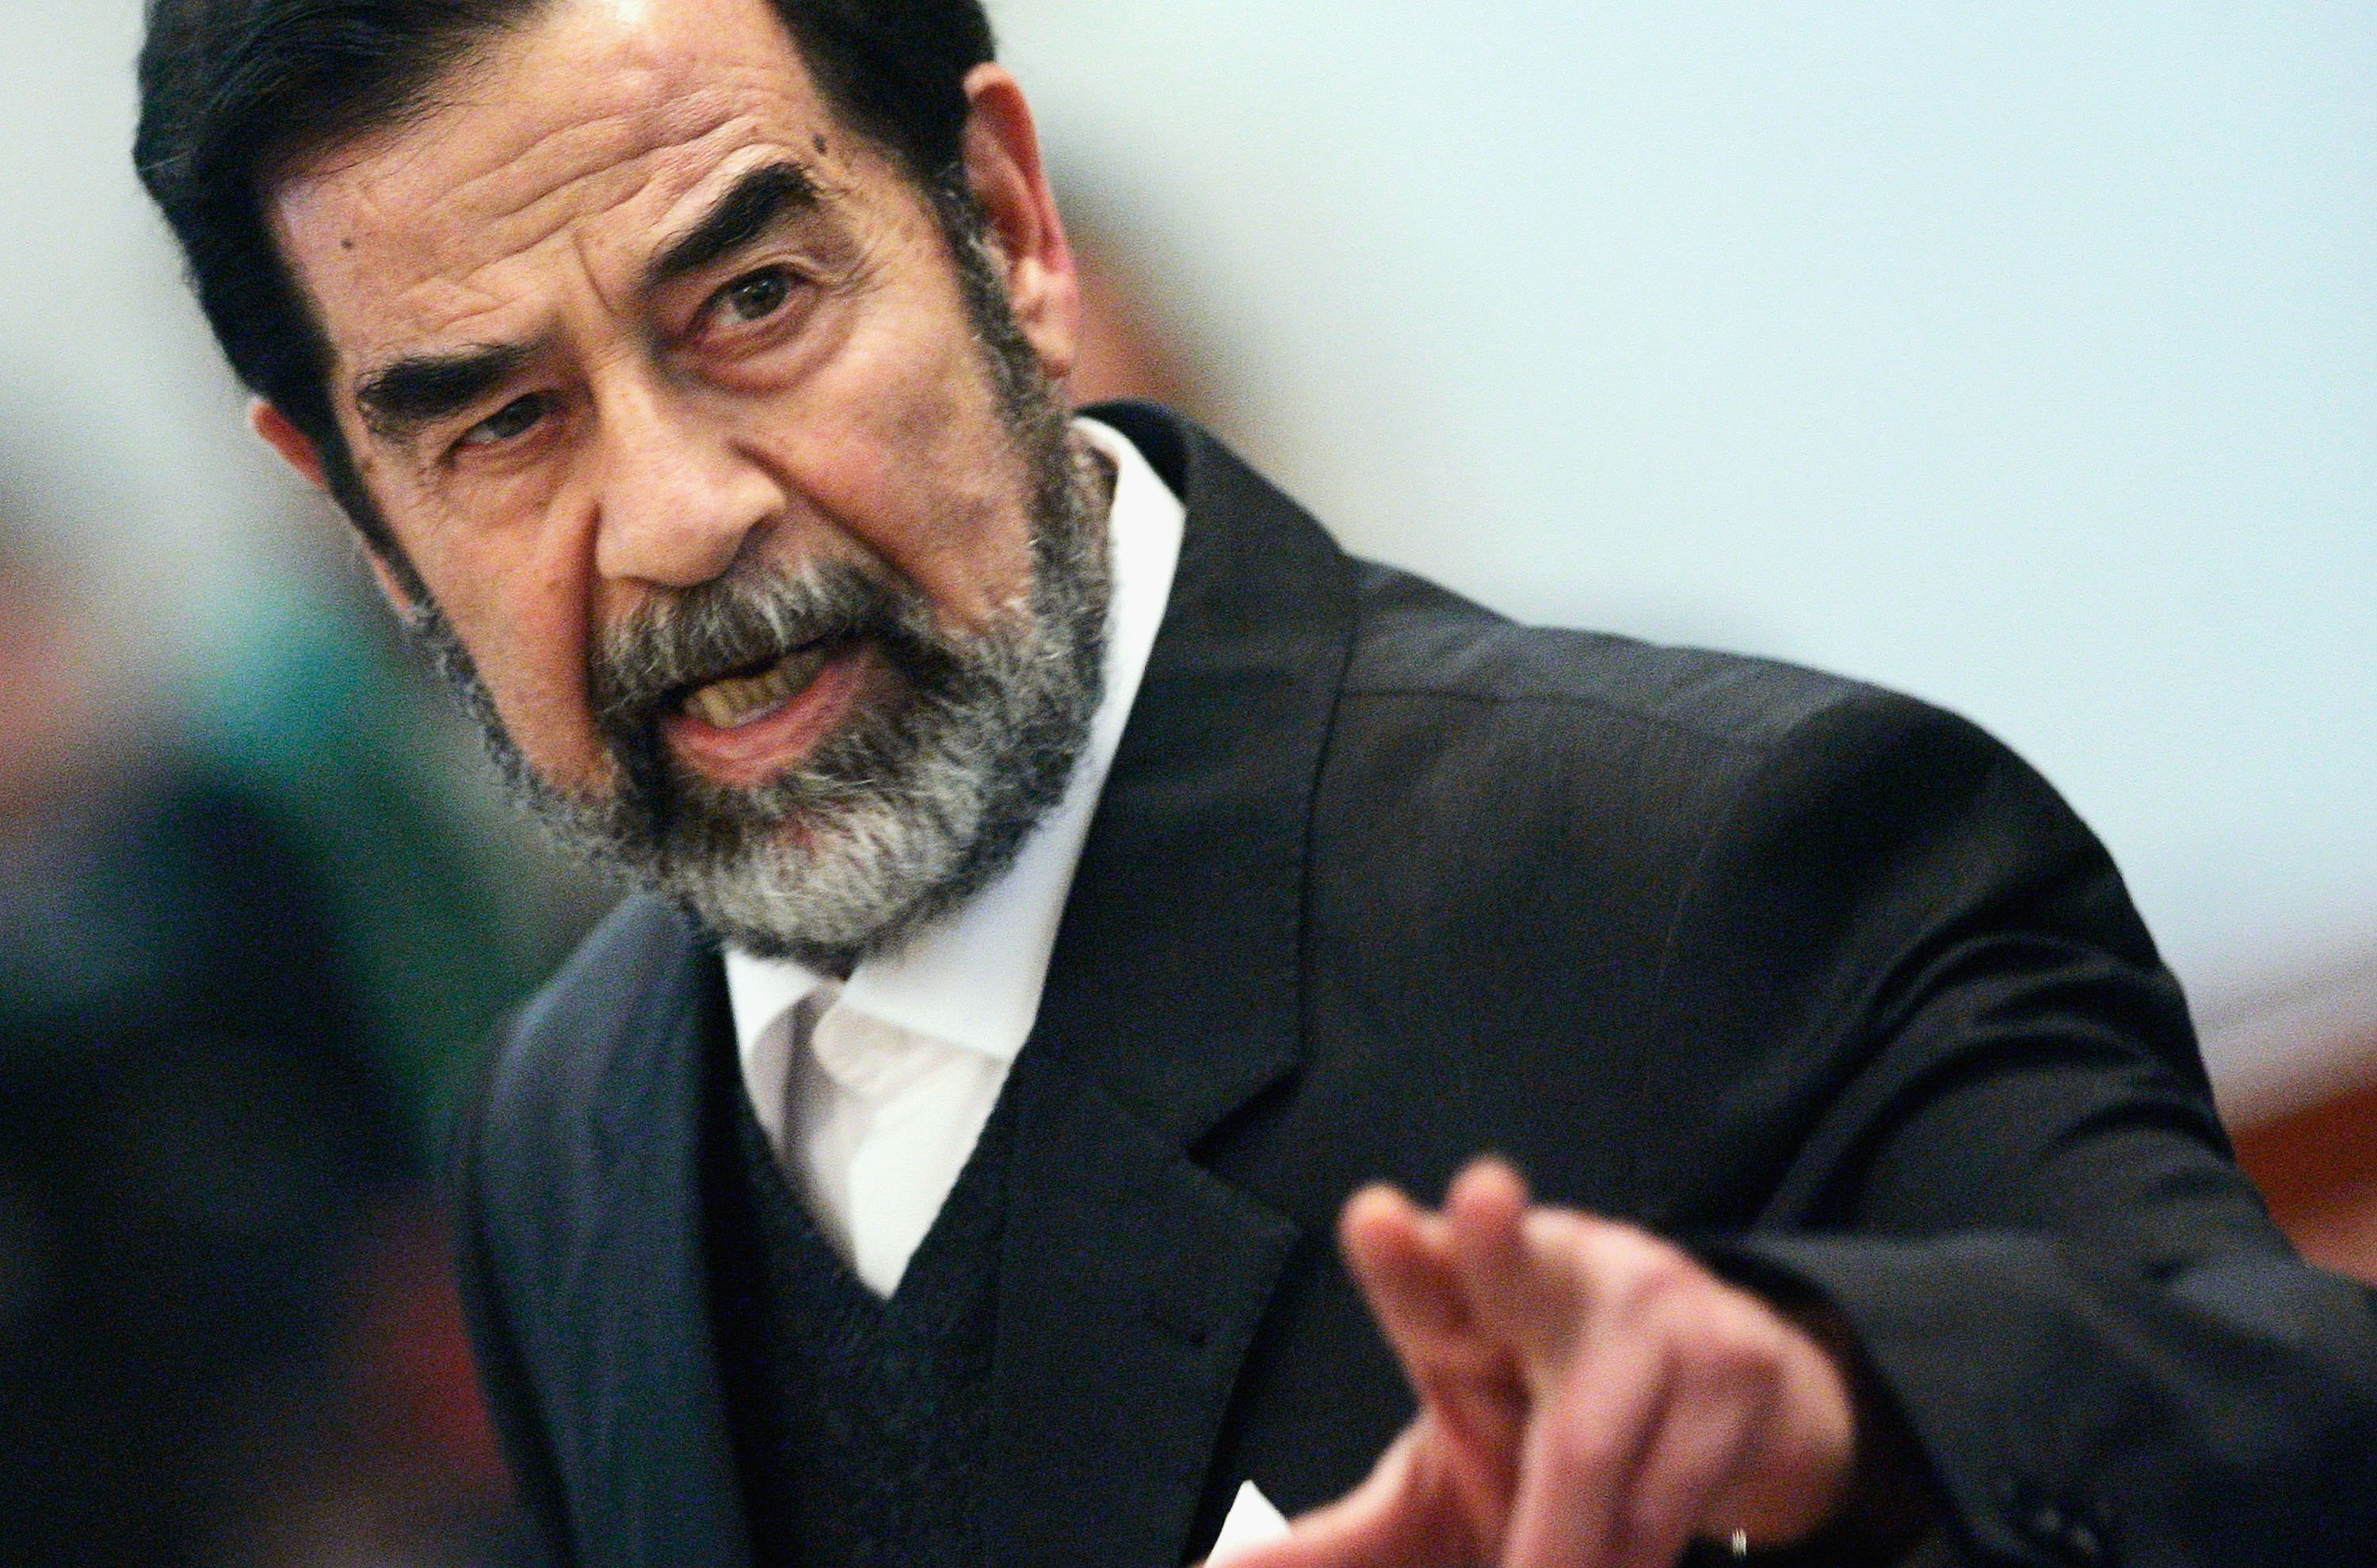 <b>$25 million: Saddam Hussein (removed)</b>                                   Saddam Hussein was the president of Iraq from 1979-2003. The U.S. and the U.K. invaded Iraq in 2003 and deposed him on suspicions of ties to al-Qaeda. He was tried and convicted in 2006 of charges related to the 1982 killings of 148 Iraqi Shi'ites. He was sentenced to death, and hung in Dec. 2006.